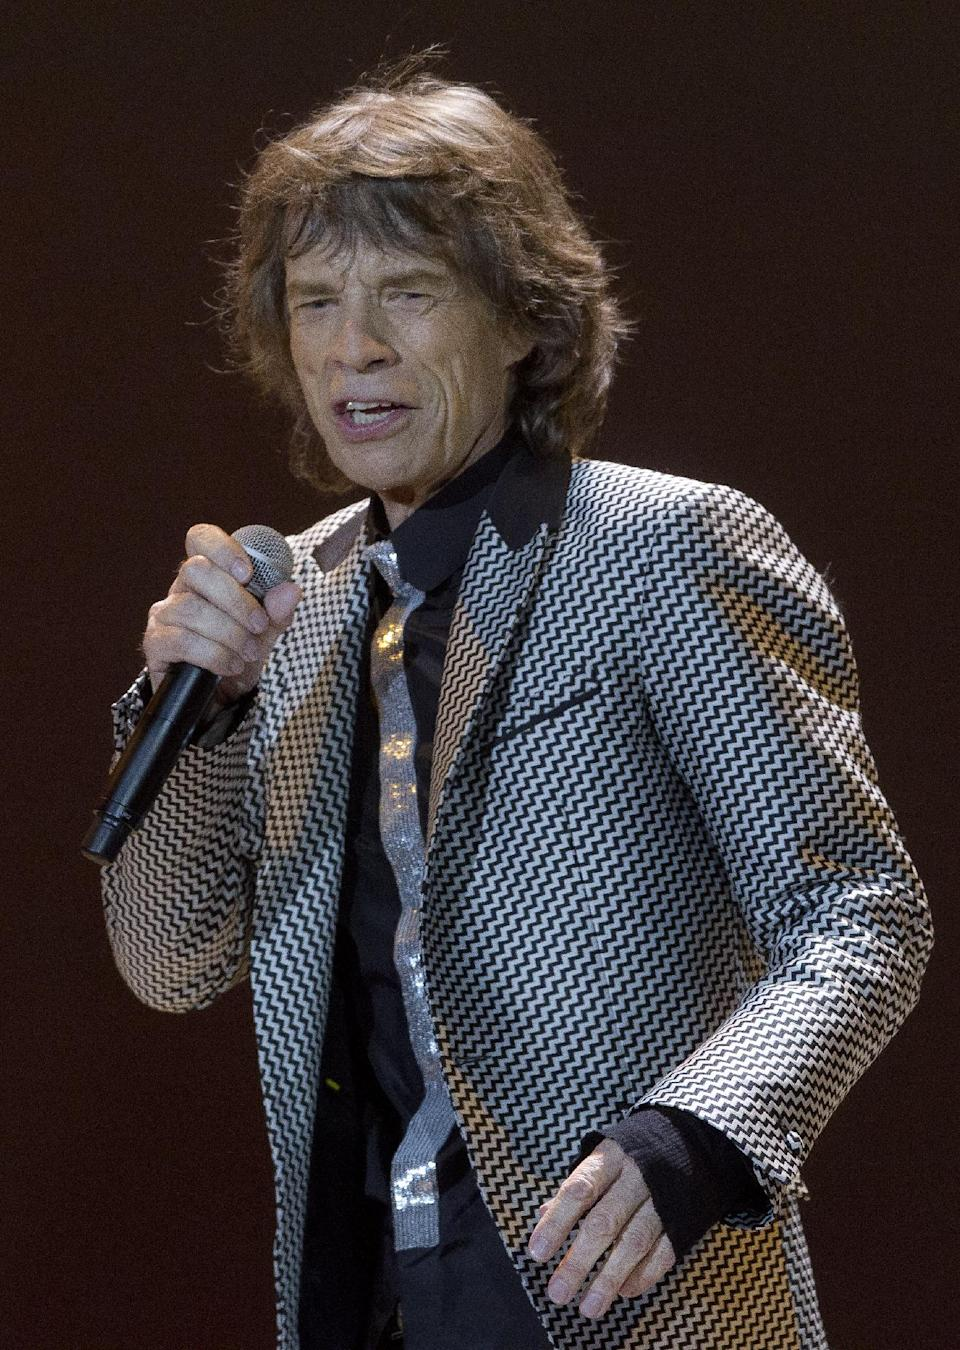 Mick Jagger of The Rolling Stones performs at the O2 arena in east London, Sunday, Nov. 25, 2012. The band are playing four gigs to celebrate their 50th anniversary, including two shows at London's O2 and two more in New York. (Photo by Joel Ryan/Invision/AP)